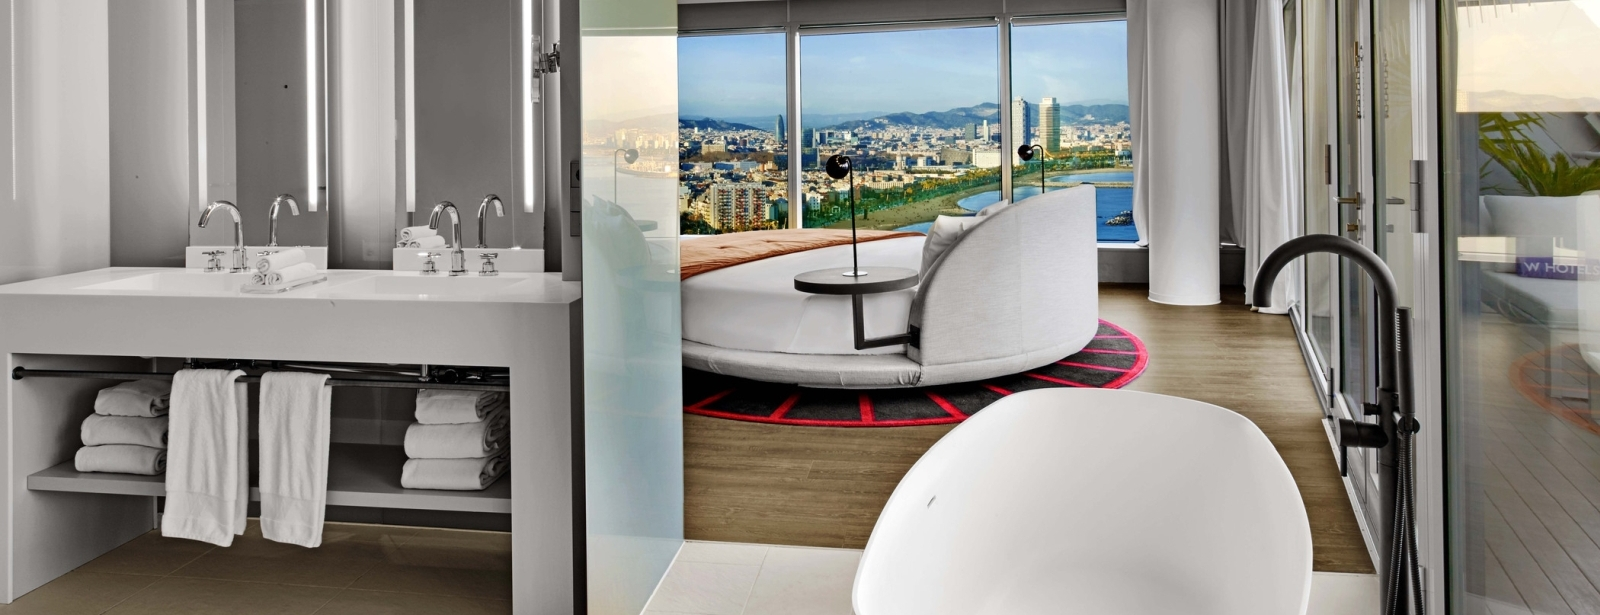 WOW Suite Bathroom and Bedroom at W Barcelona